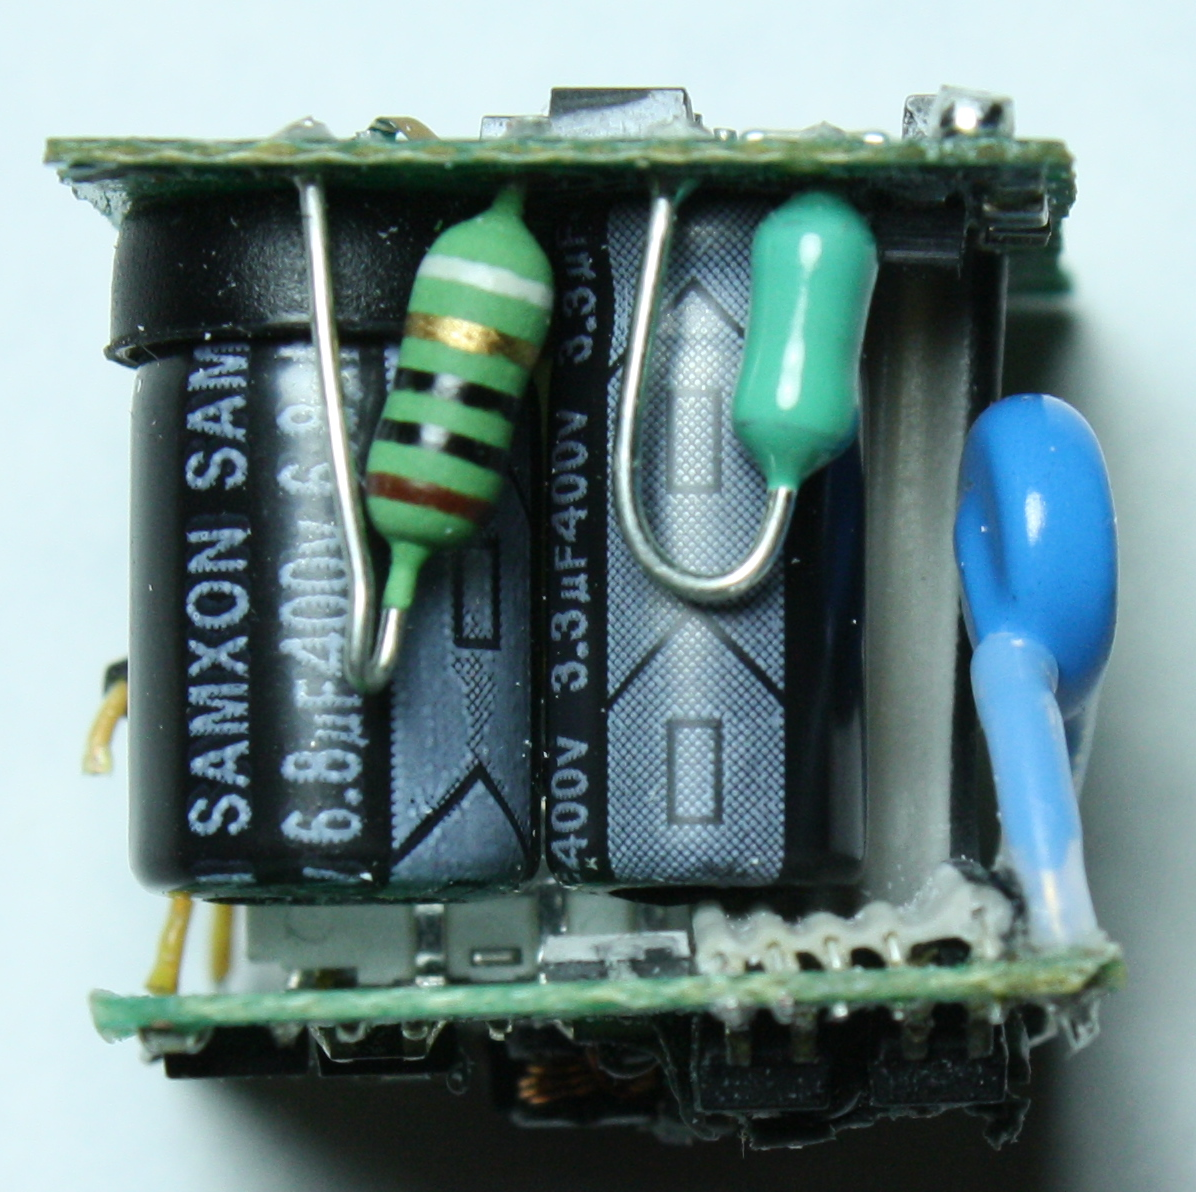 Apple Iphone Charger Teardown Quality In A Tiny Expensive Package 19 Inch Lcd Monitor Power Supply Schematic Circuit Diagram Showing The Fusible Resistor Striped Inductor Green